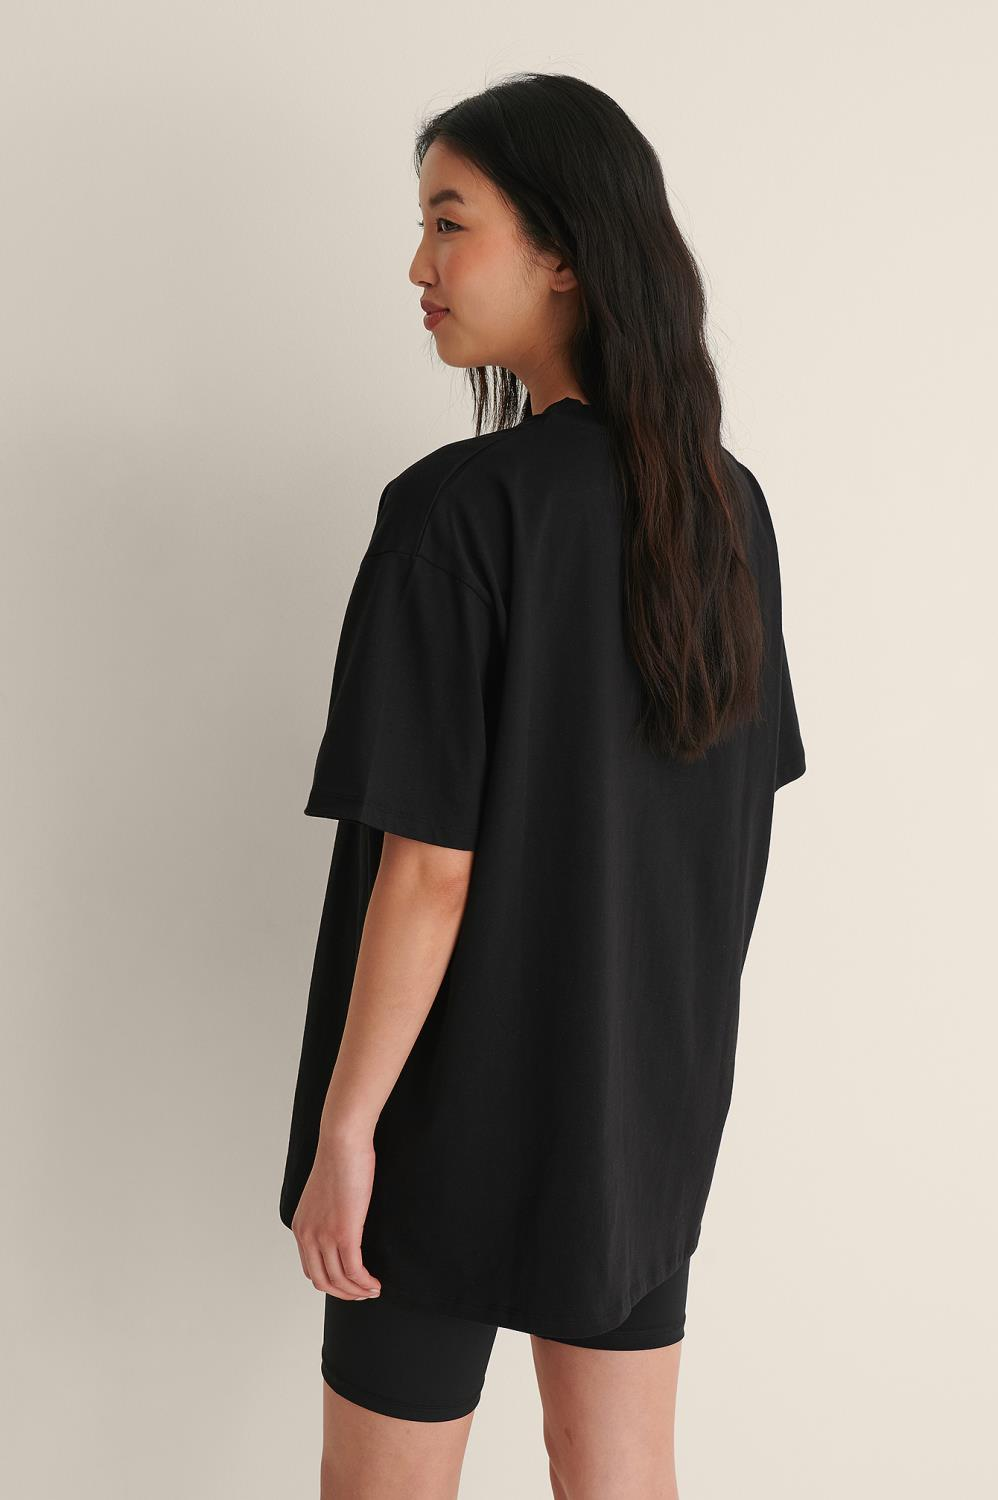 gallery-3751-for-1726-000013-black